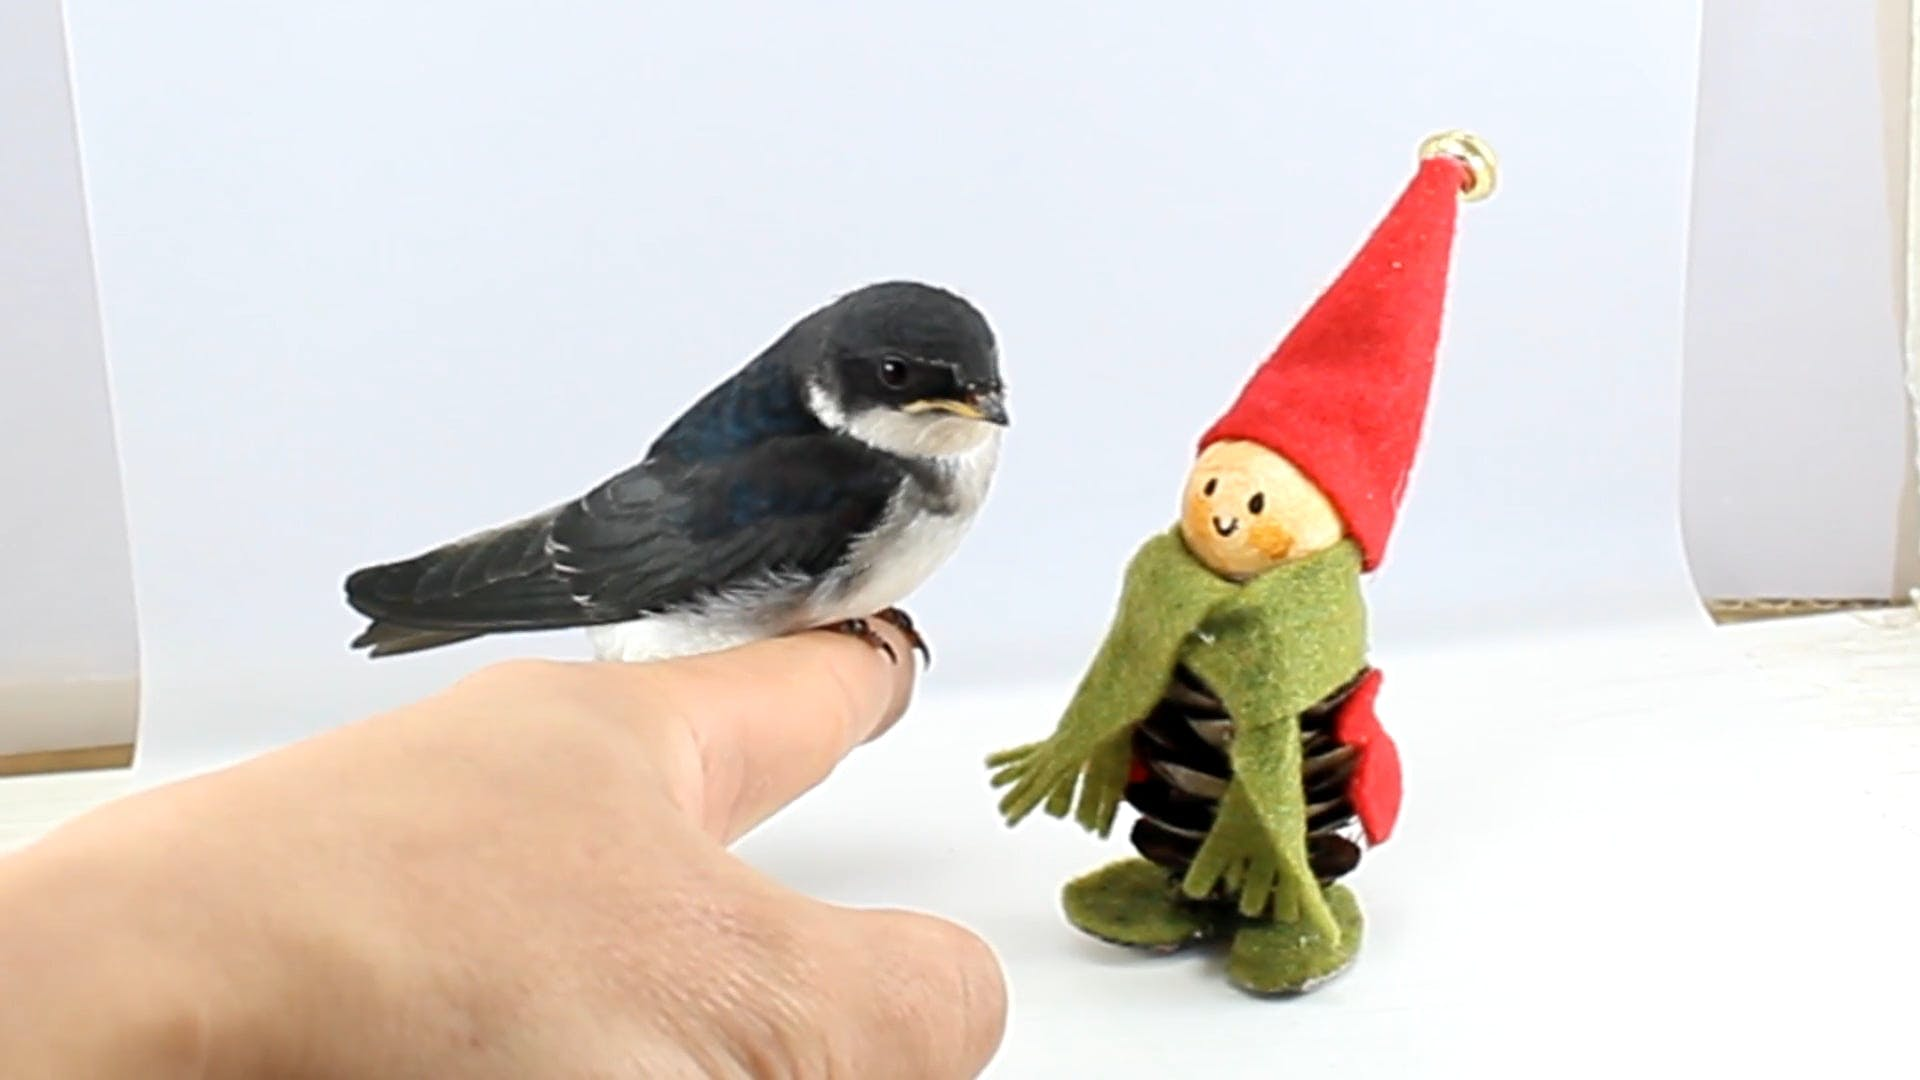 Bird Perched On A Finger